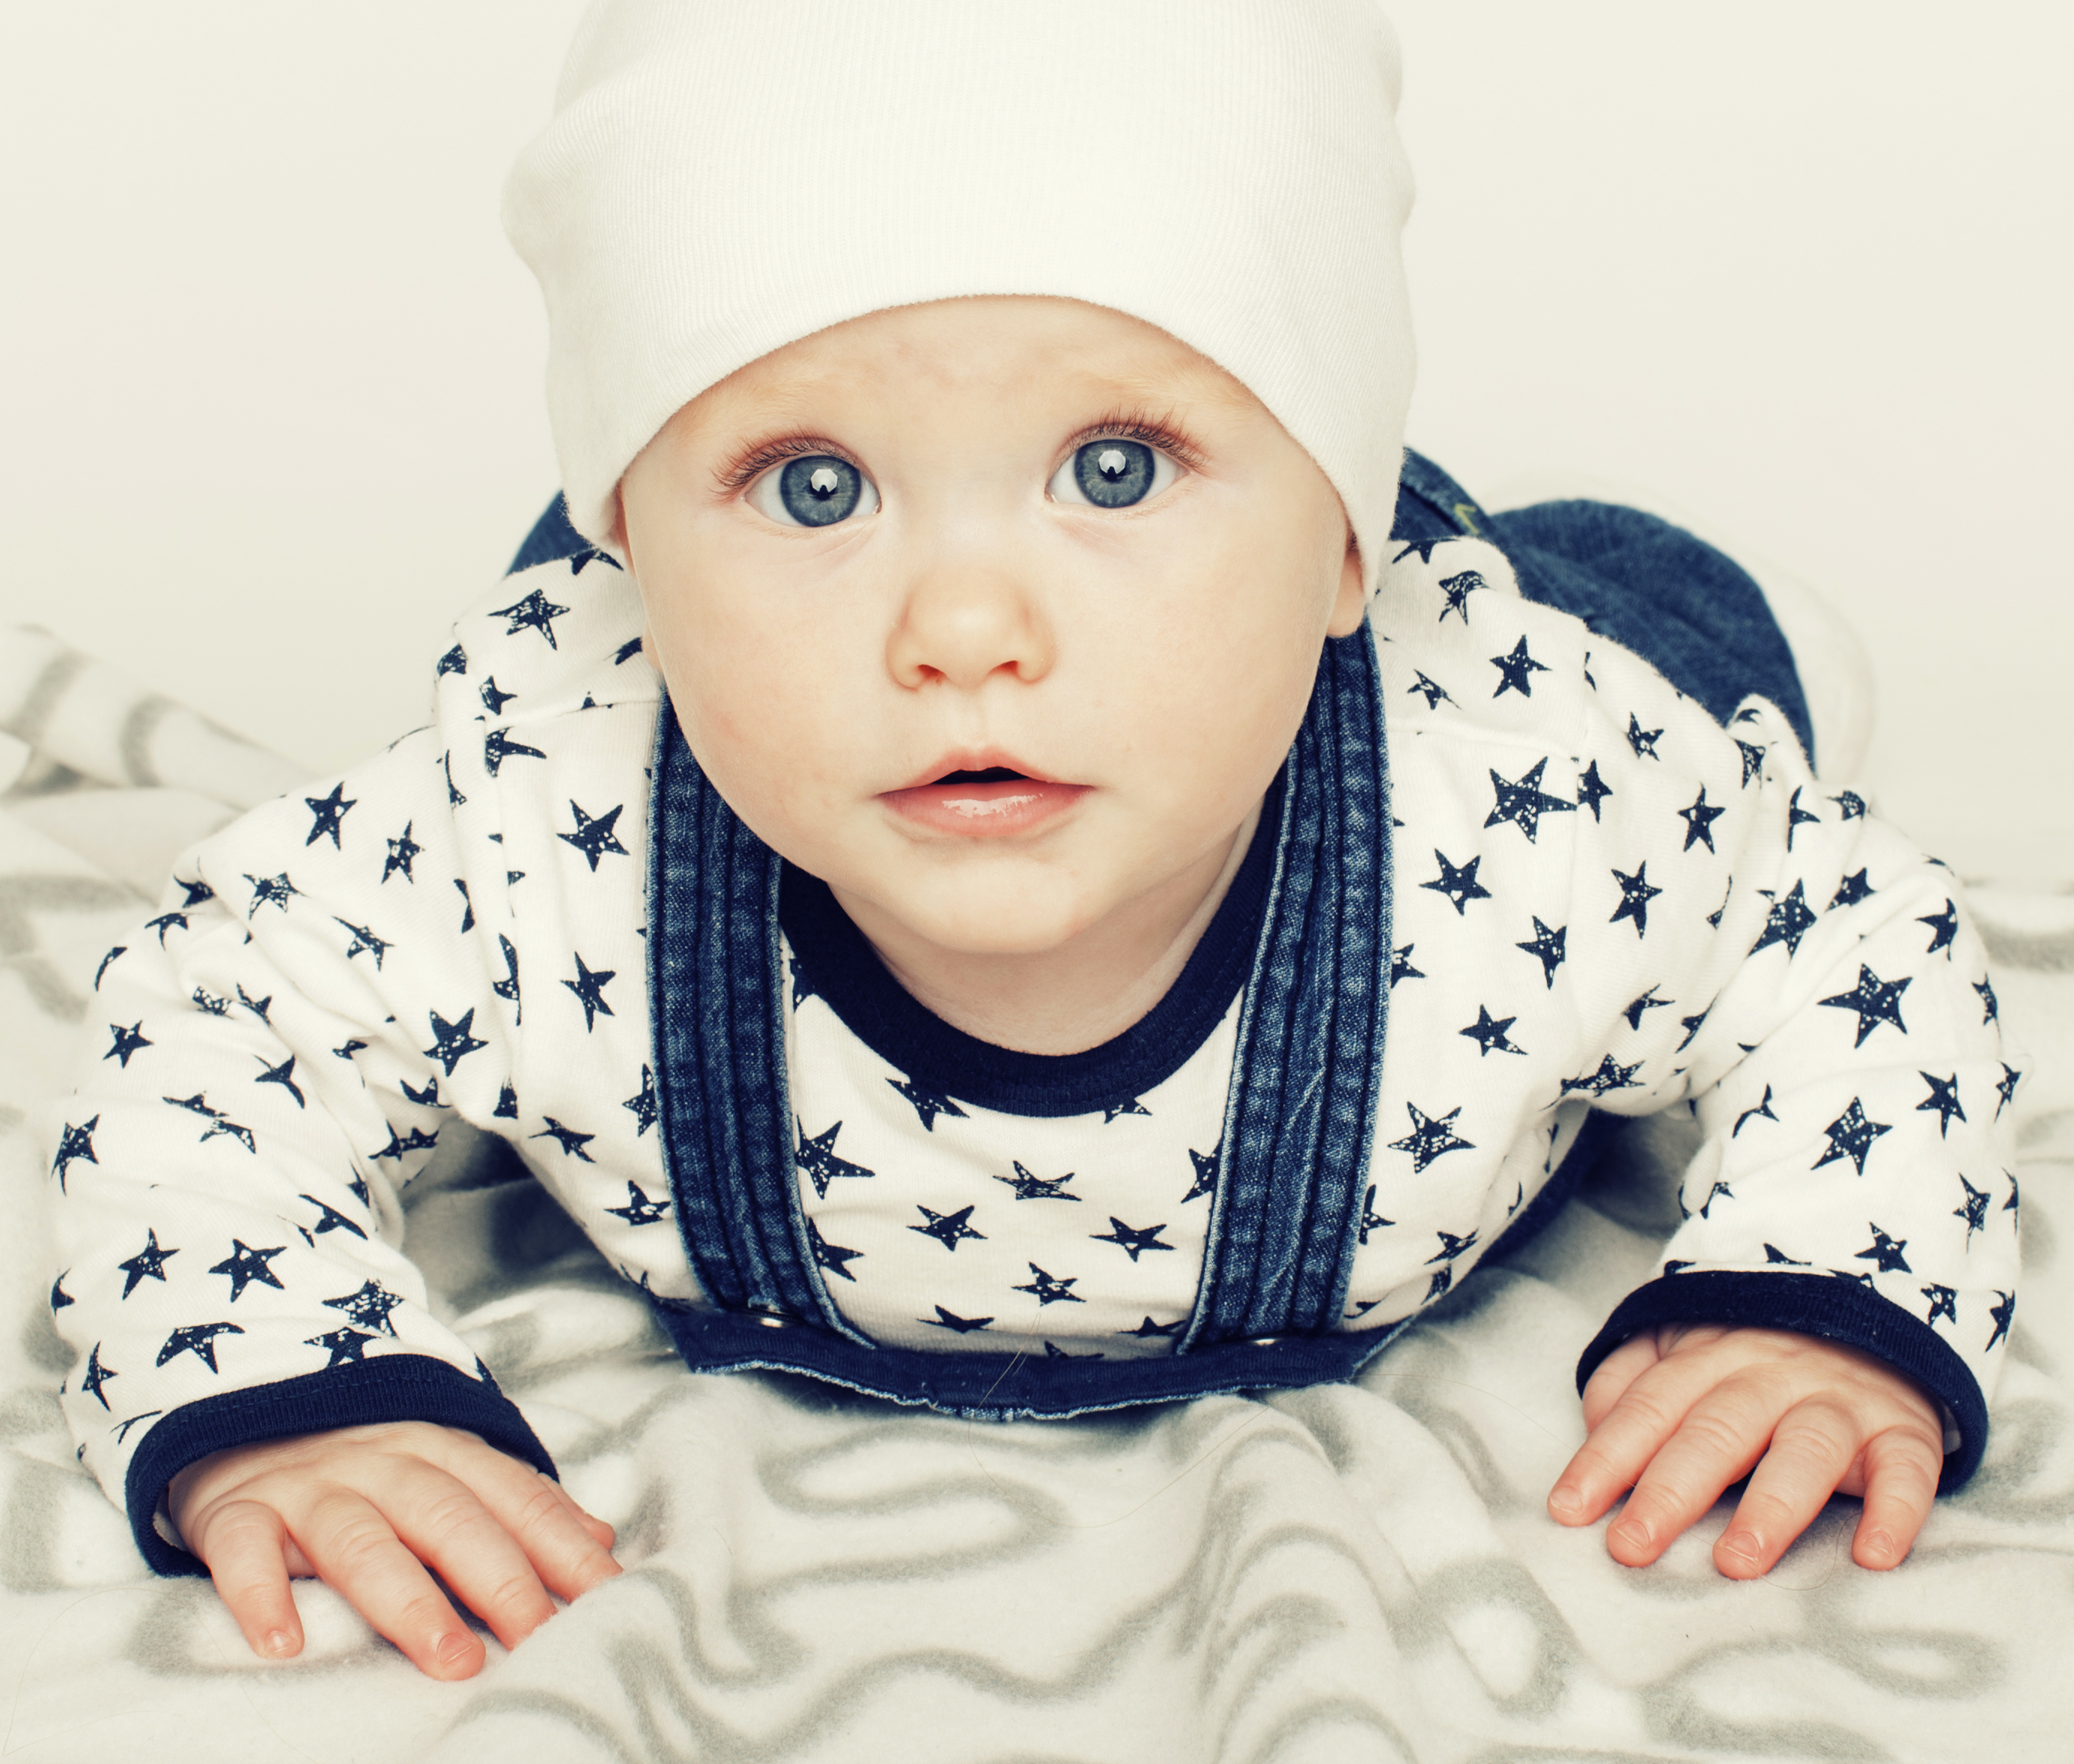 little cute baby toddler on carpet isolated close up smiling adorable cheerful